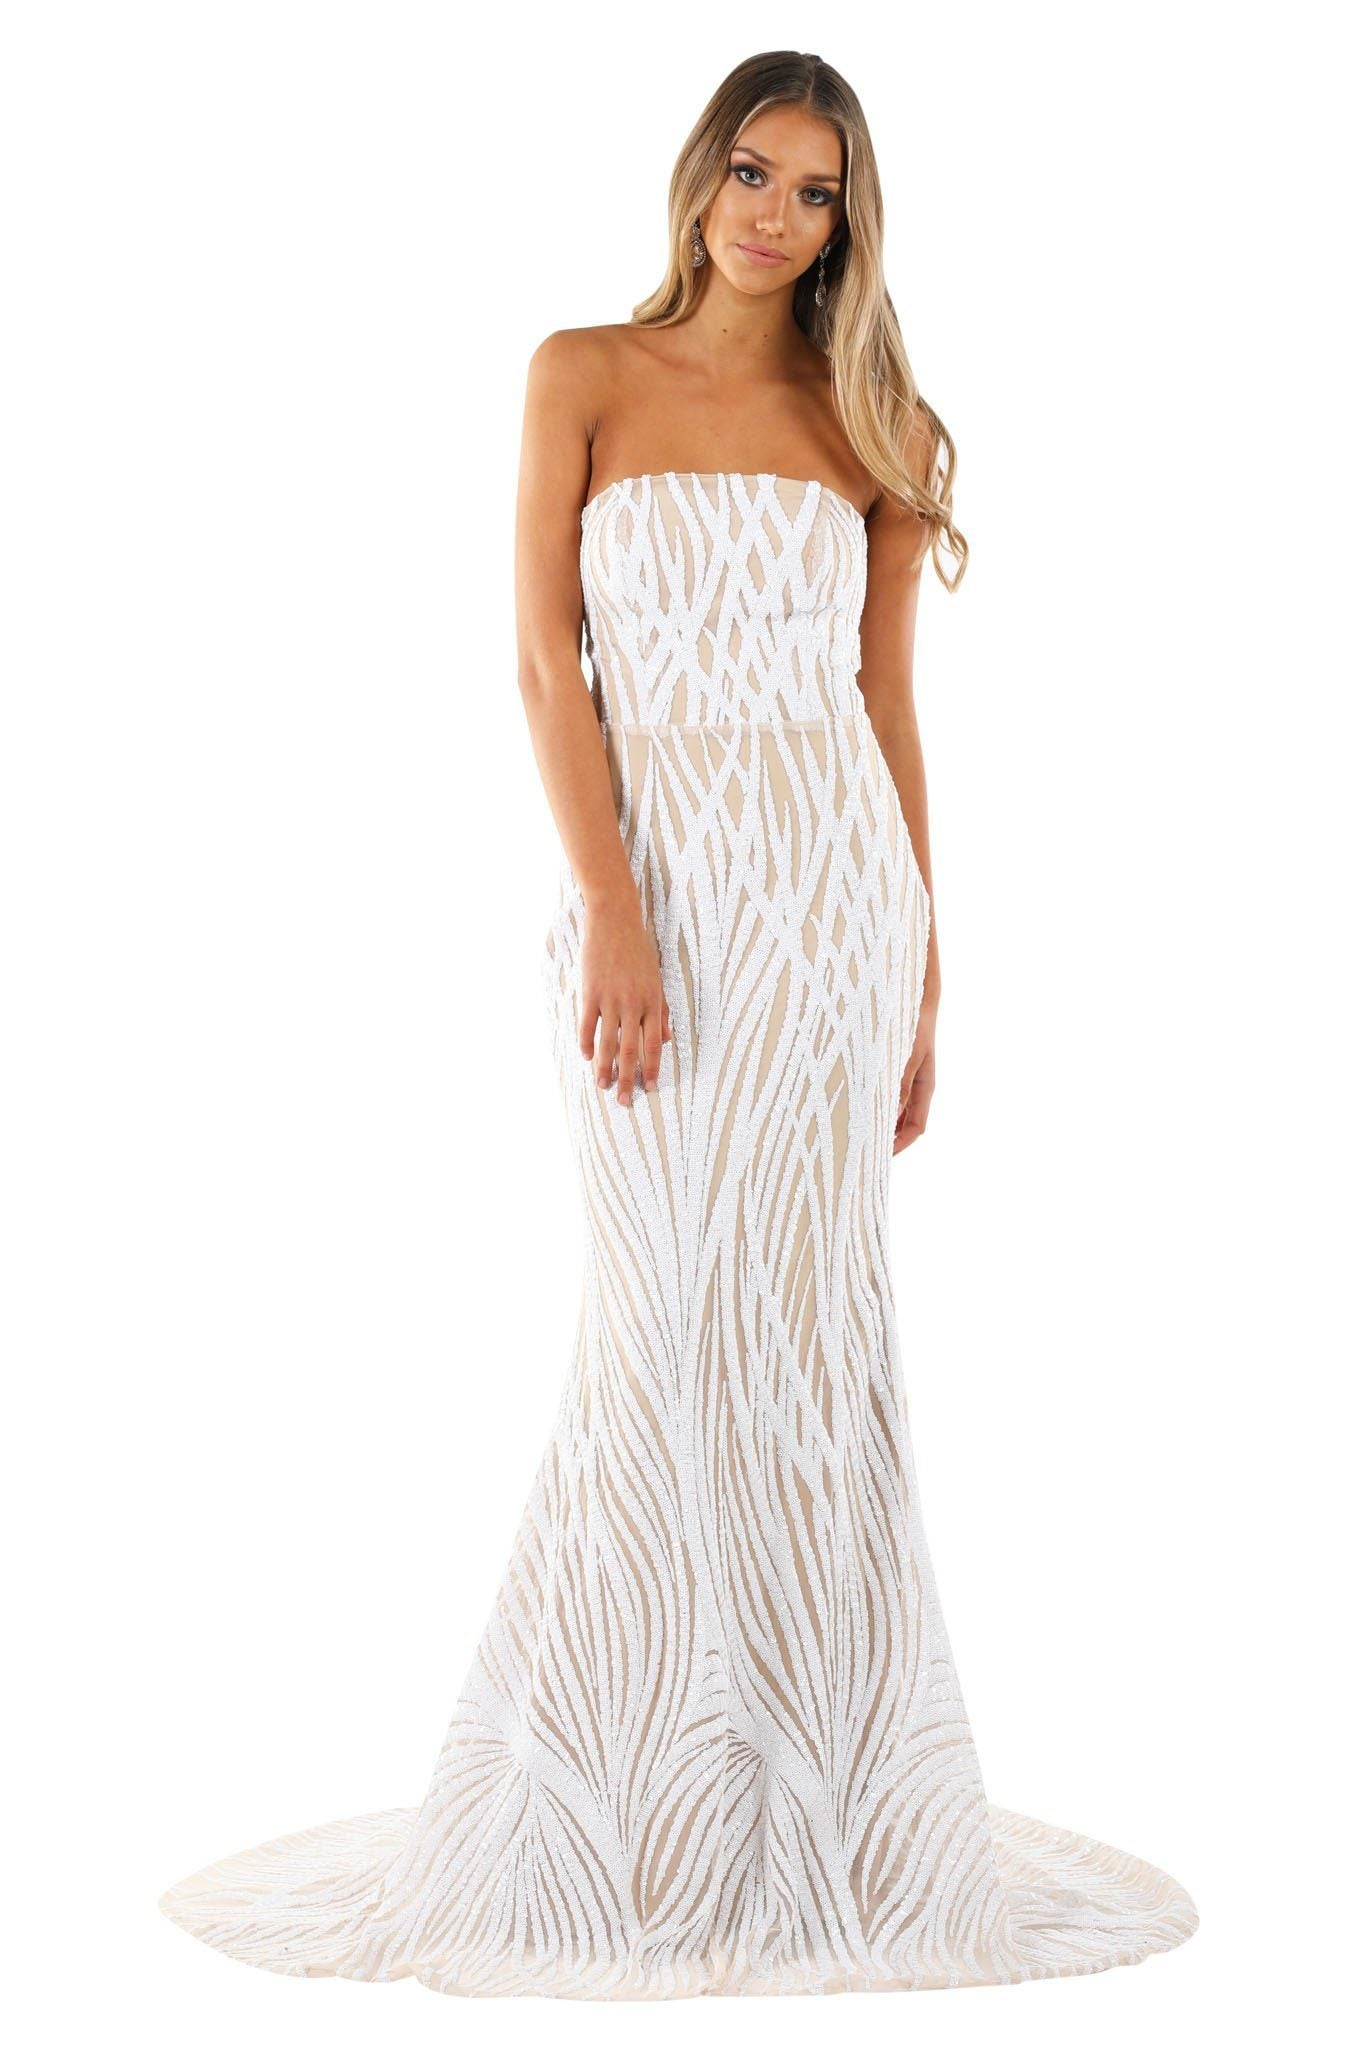 Fit and flare evening gown with white vines pattern sequins, nude lining, strapless straight neckline design and long train